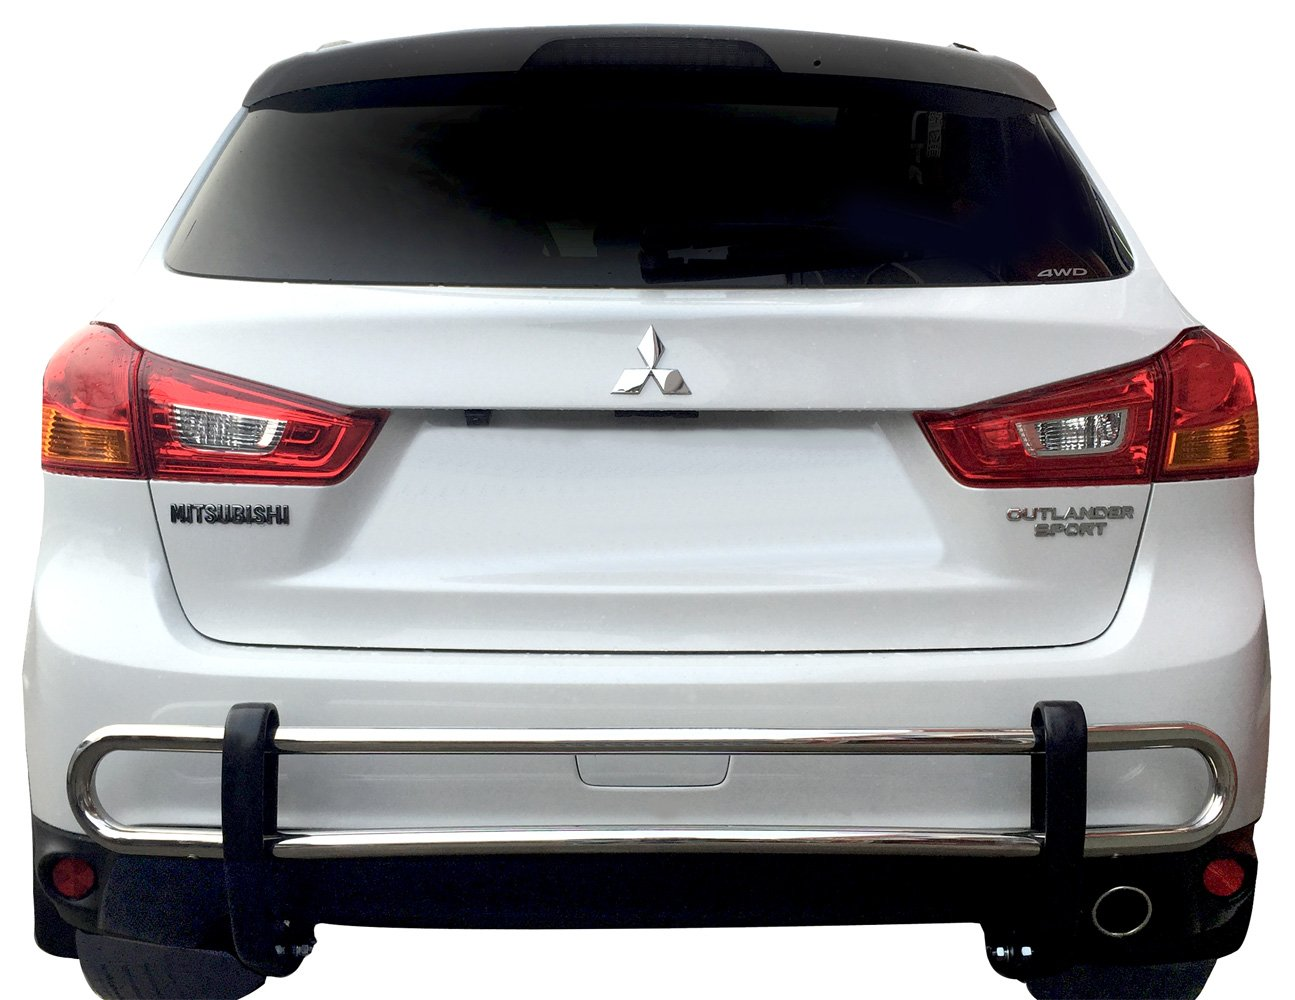 Broadfeet Rear Bumper Guard Off Road For Honda Minivan